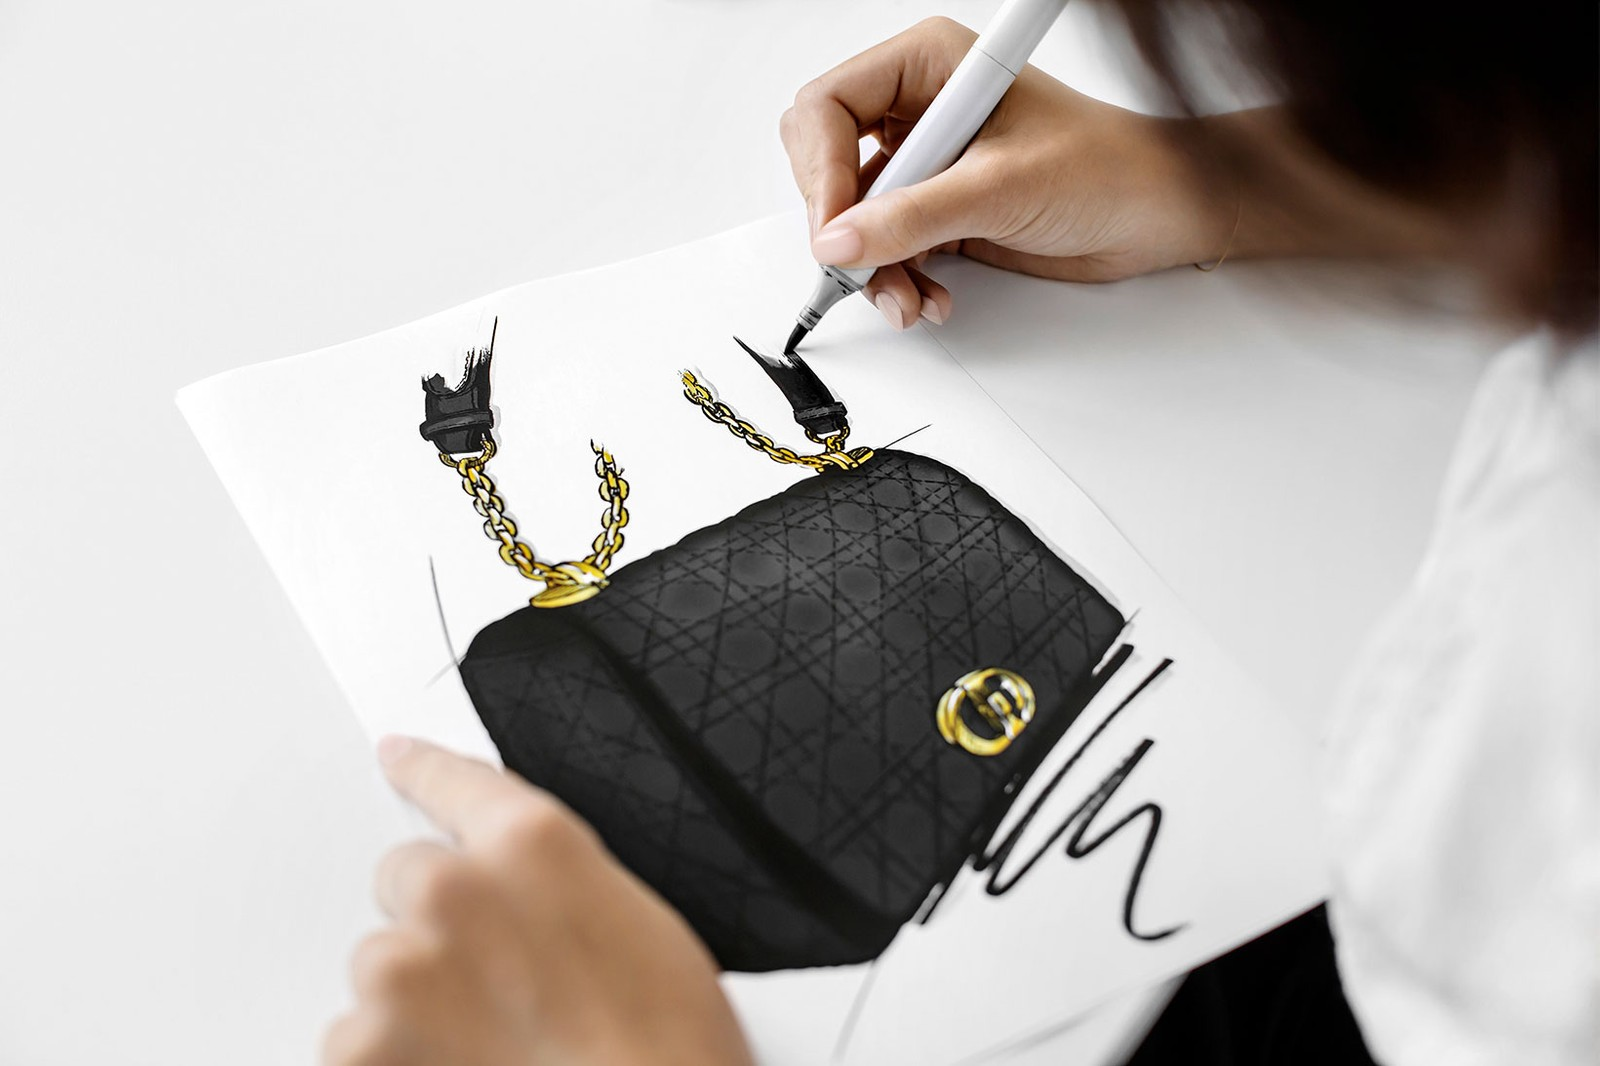 dior caro bag cruise 2021 collection how its made behind the scenes black gold chains